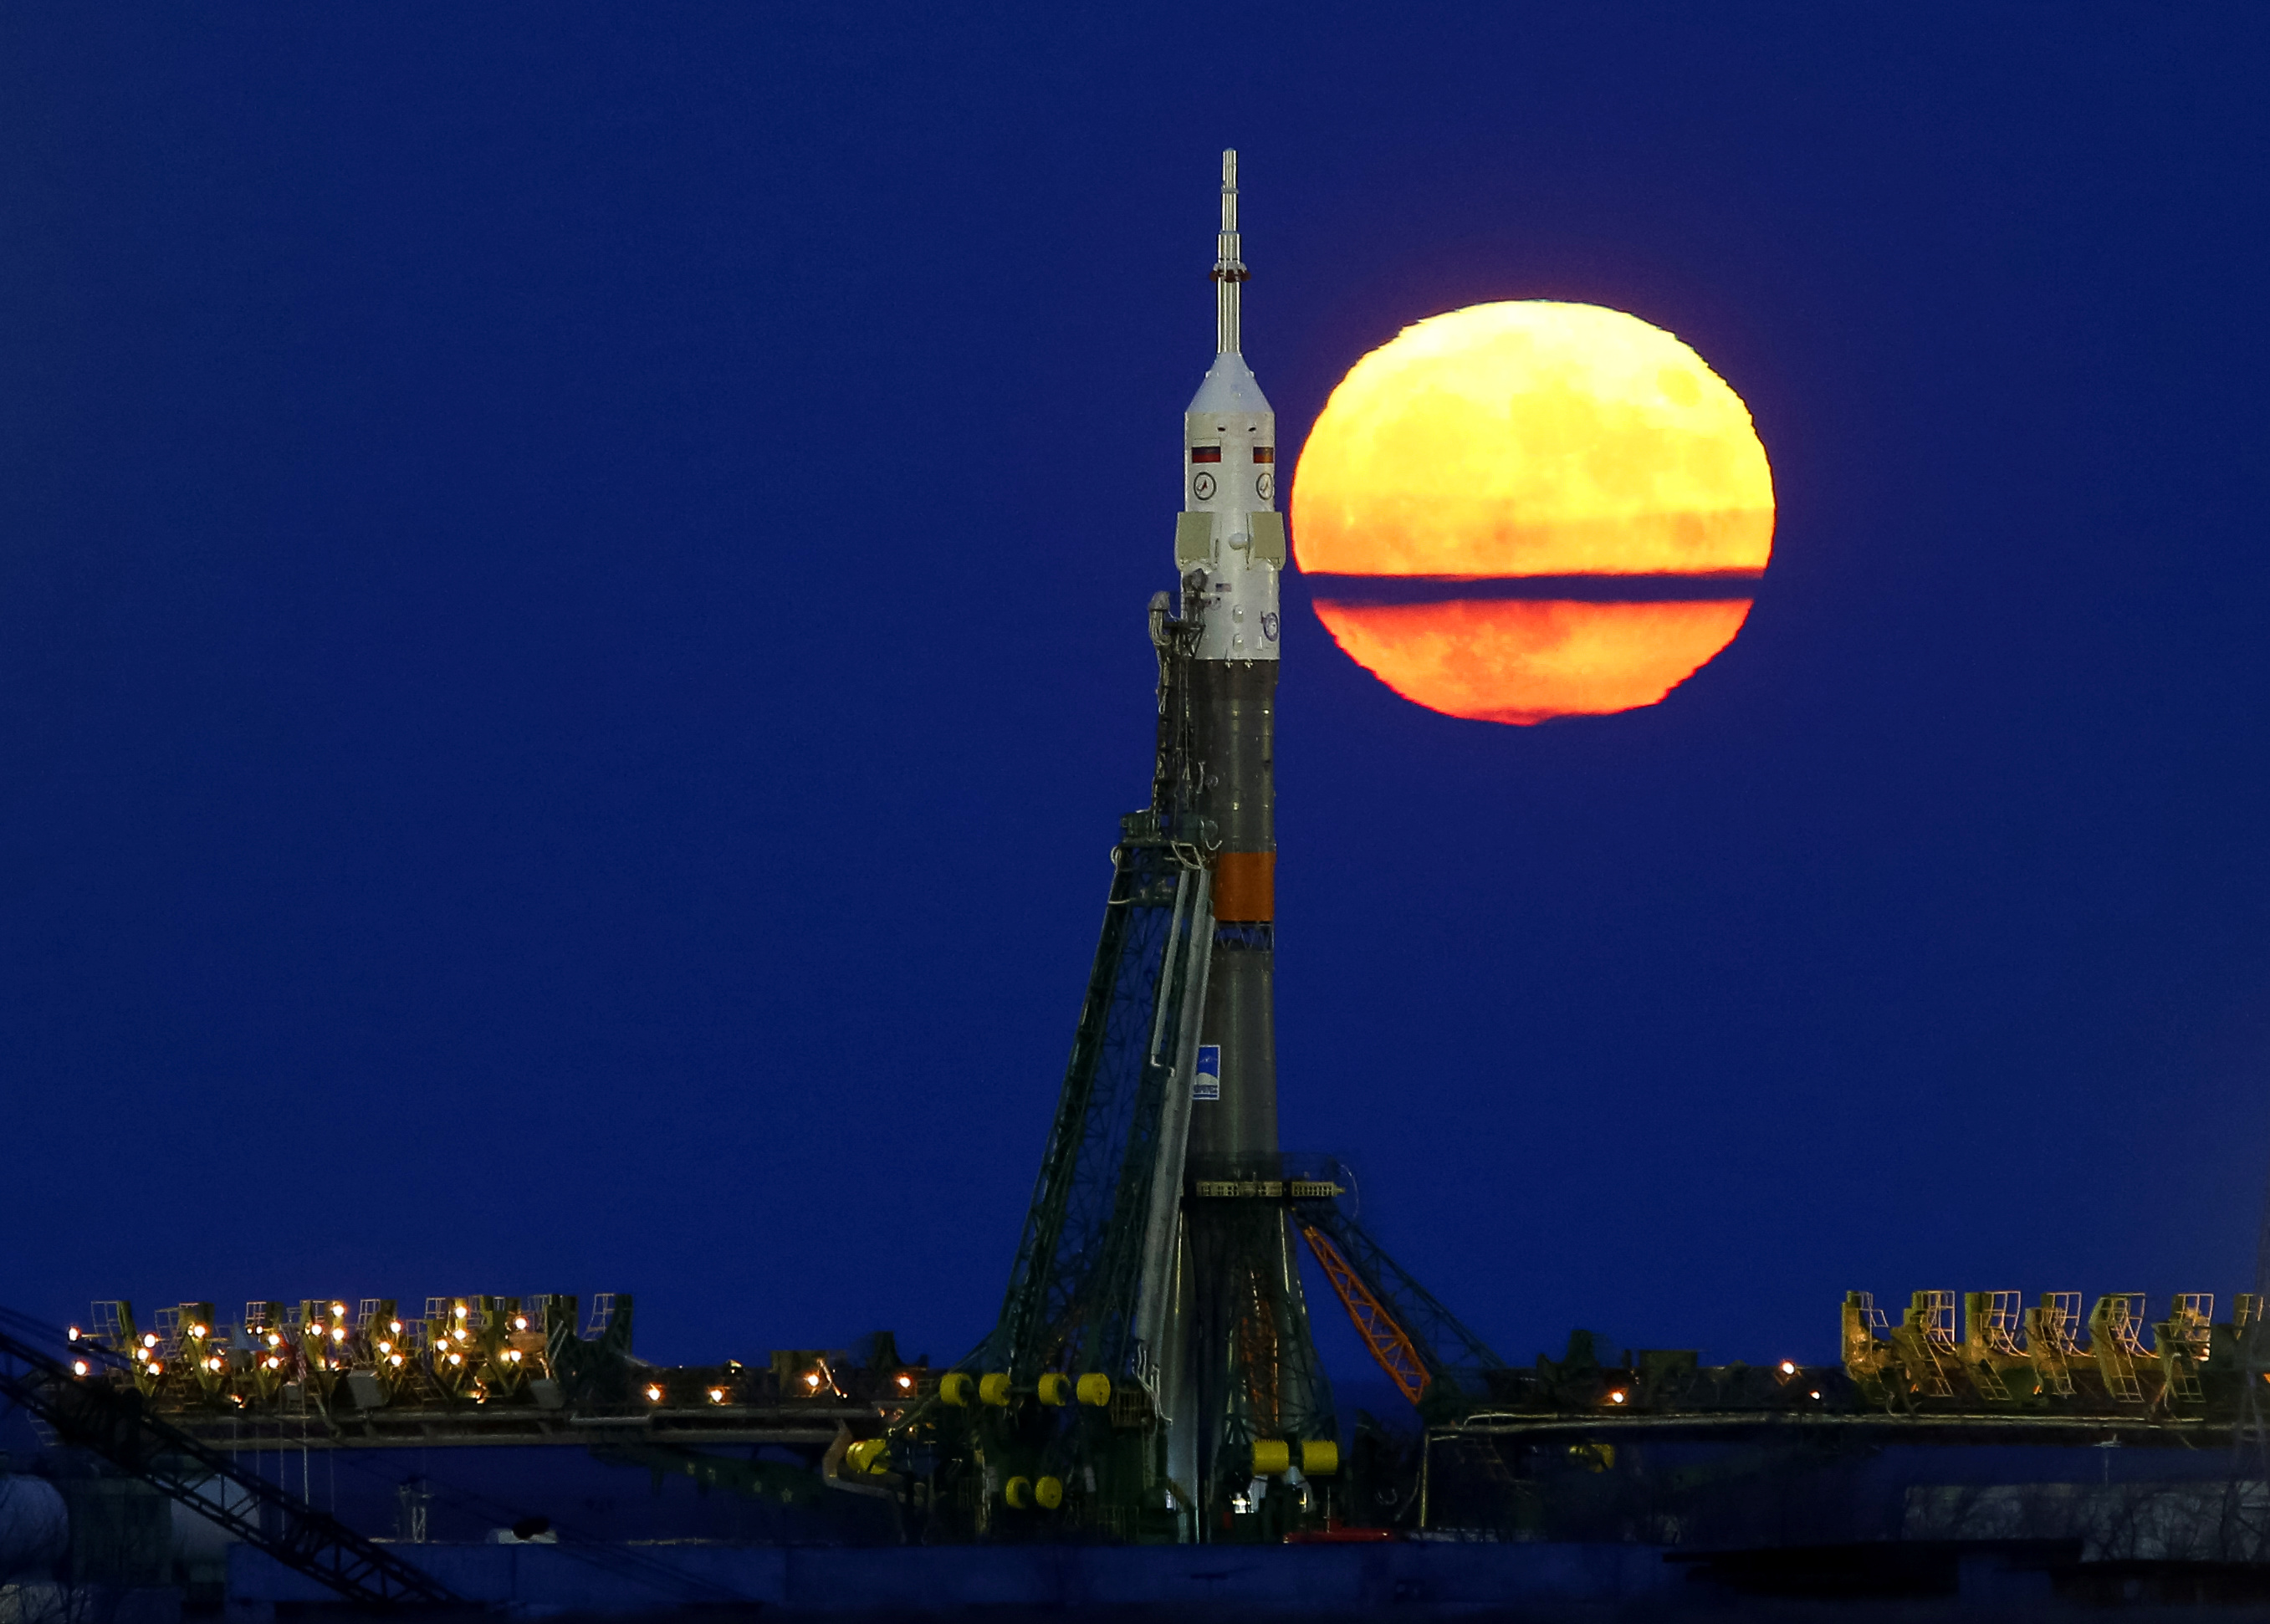 The supermoon rises behind the Soyuz MS-03 spacecraft, ahead of its upcoming launch to the International Space Station, at the Baikonur cosmodrome in Kazakhstan. Photo by Shamil Zhumatov/Reuters